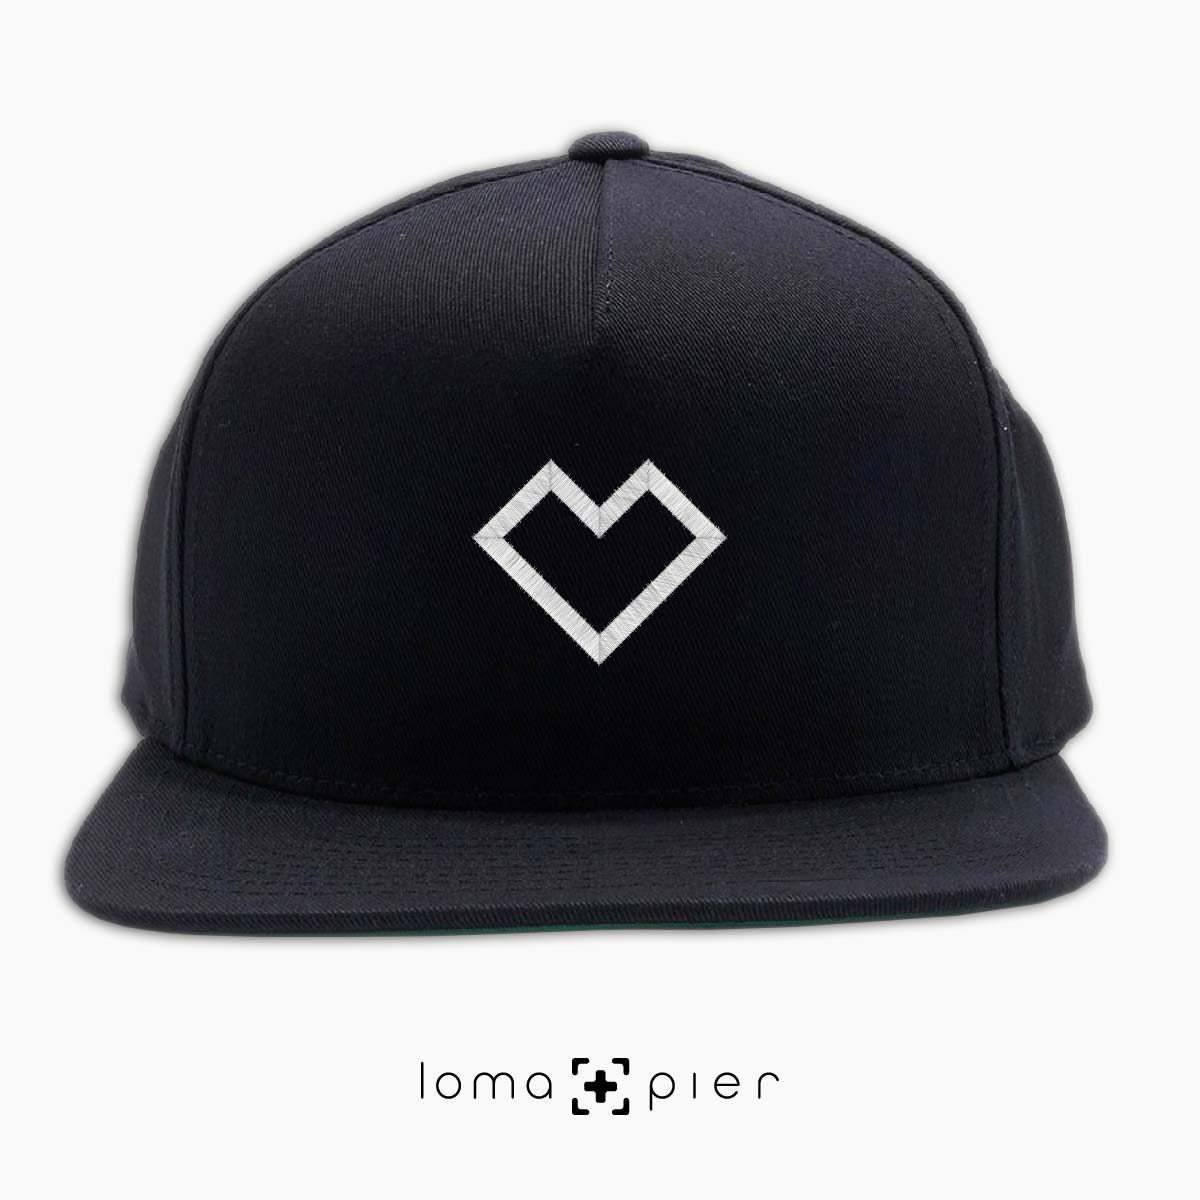 EDGY HEART icon embroidered on a black classic snapback hat with white thread by loma+pier hat store